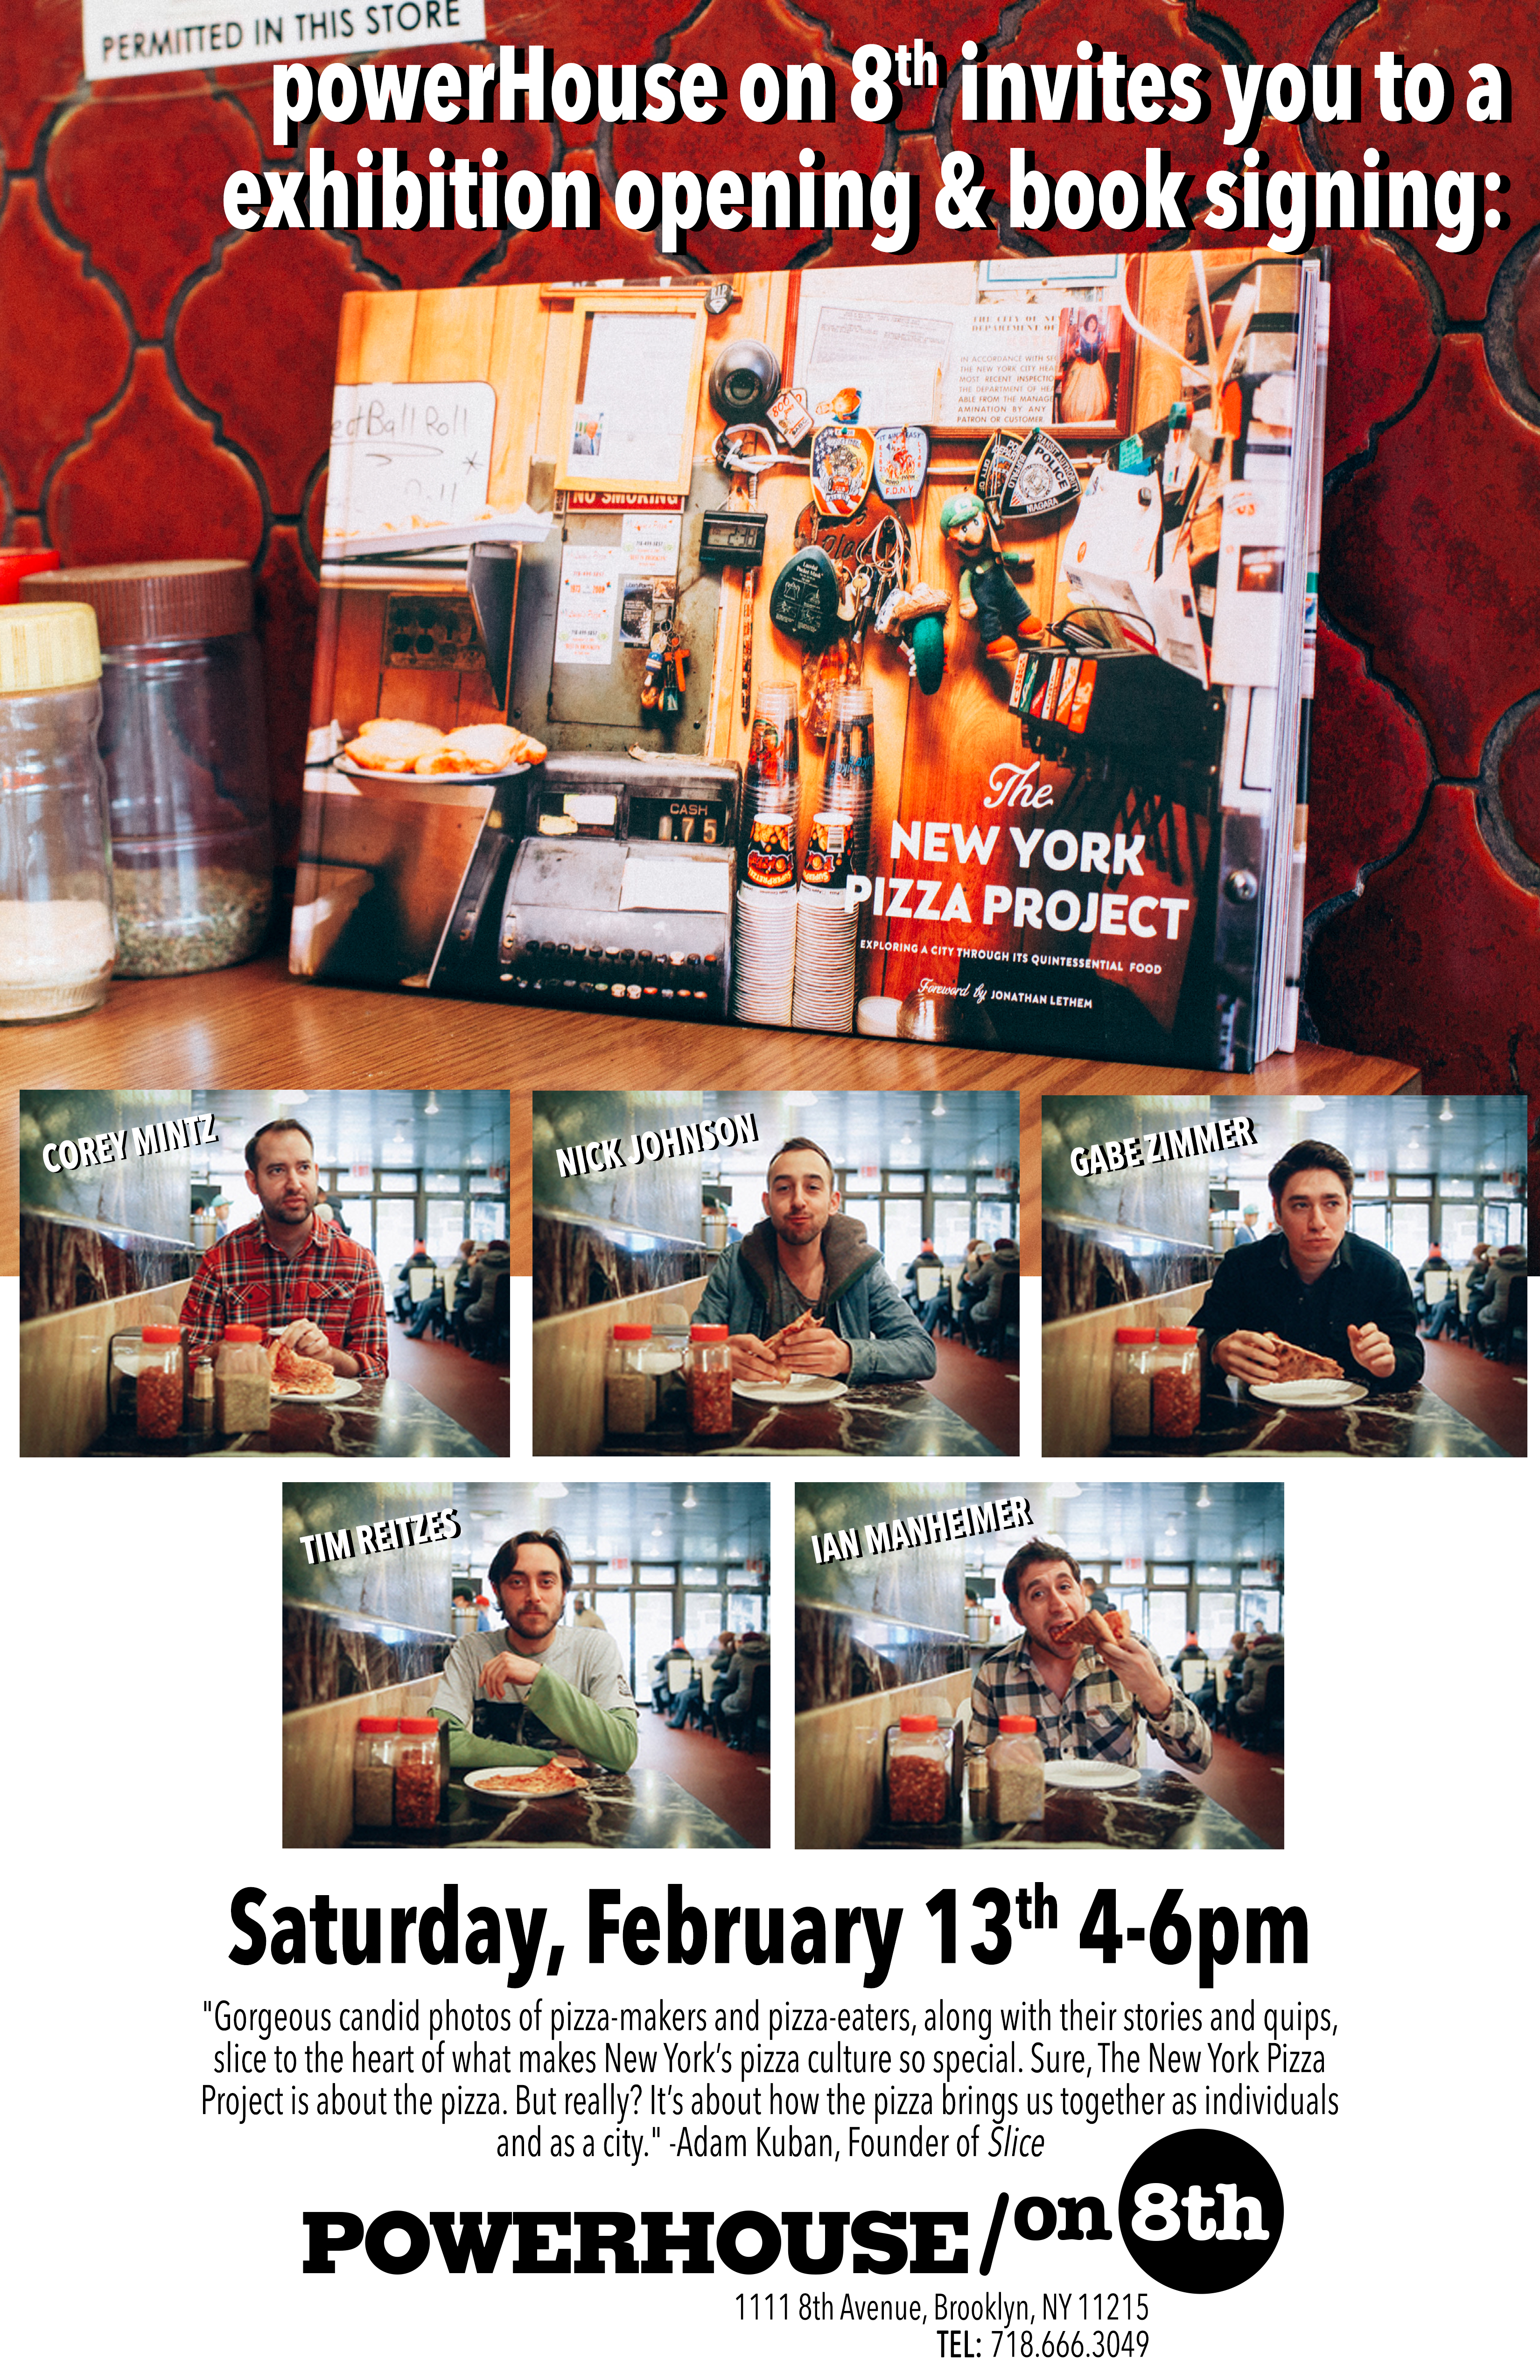 Exhibition Opening: The New York Pizza Project by Gabe Zimmer, Nick Johnson, Ian Manhelmer, Corey Mintz, and Tim Reitzes